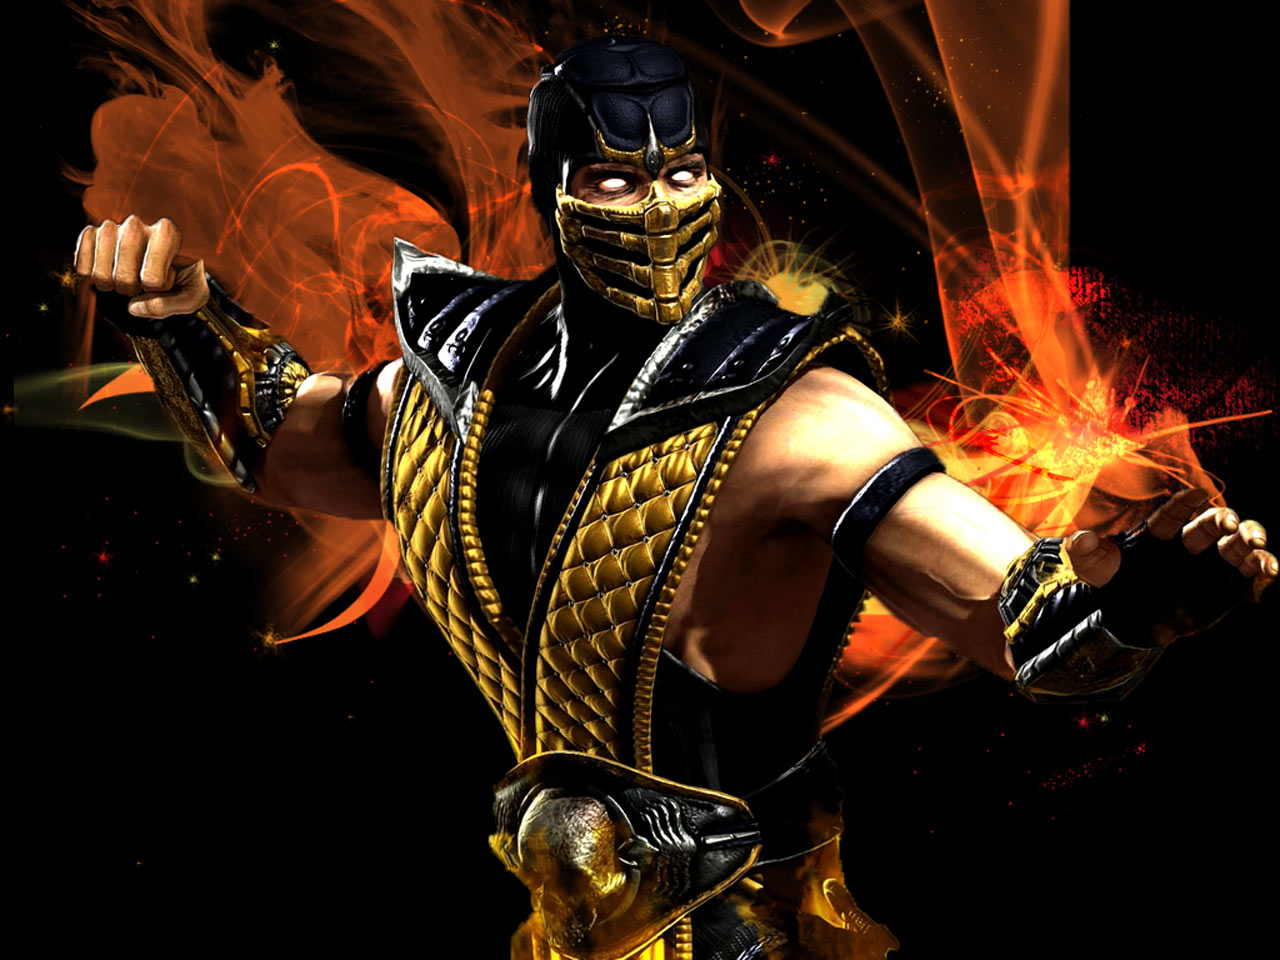 Mortal Kombat X Scorpio 3d Cool Video Games Wallpapers: Mortal Kombat Scorpion Wallpapers